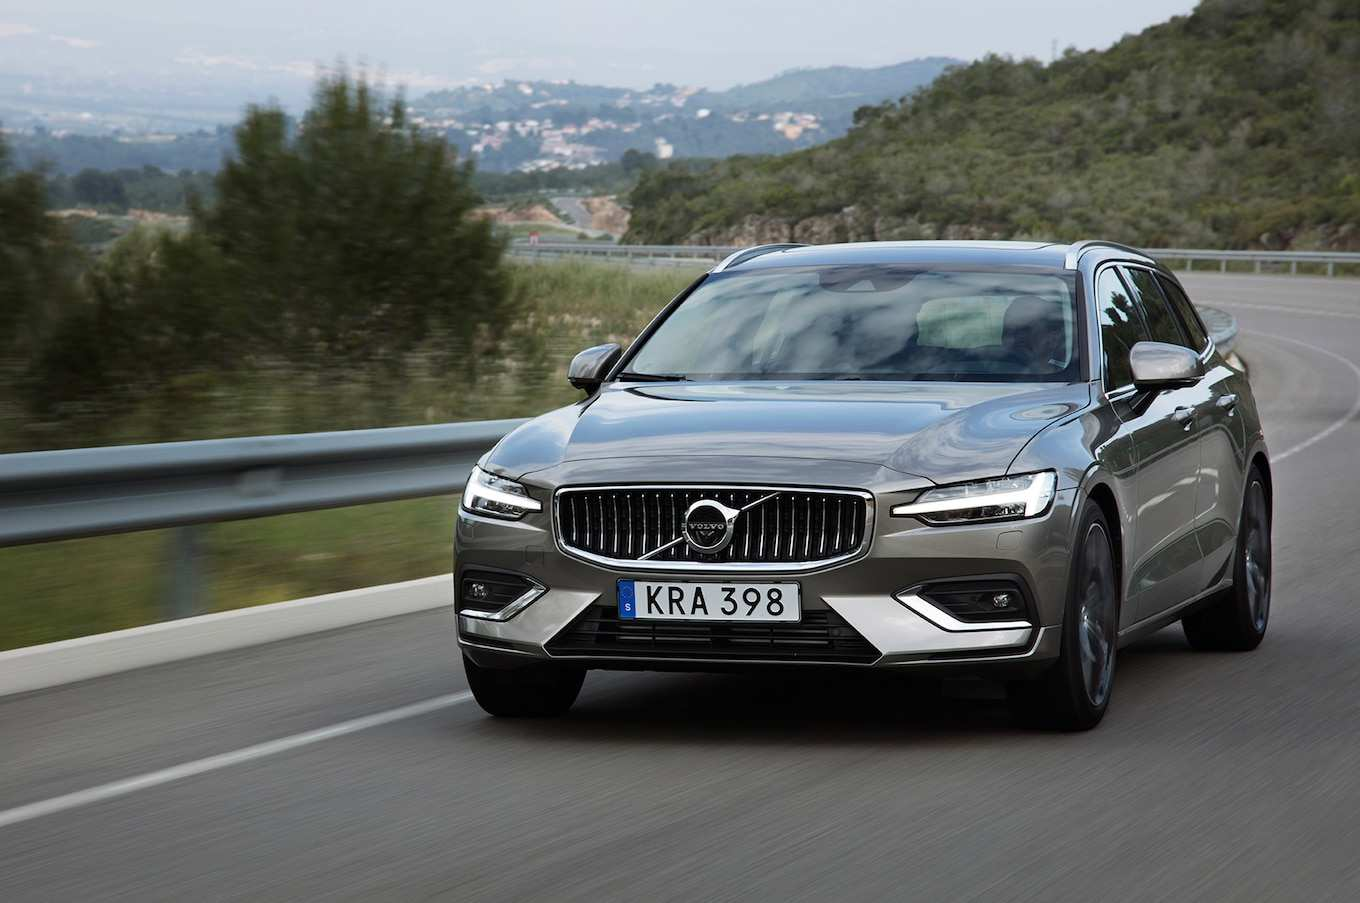 86 New Volvo Wagon V60 2019 Price And Release Date First Drive by Volvo Wagon V60 2019 Price And Release Date